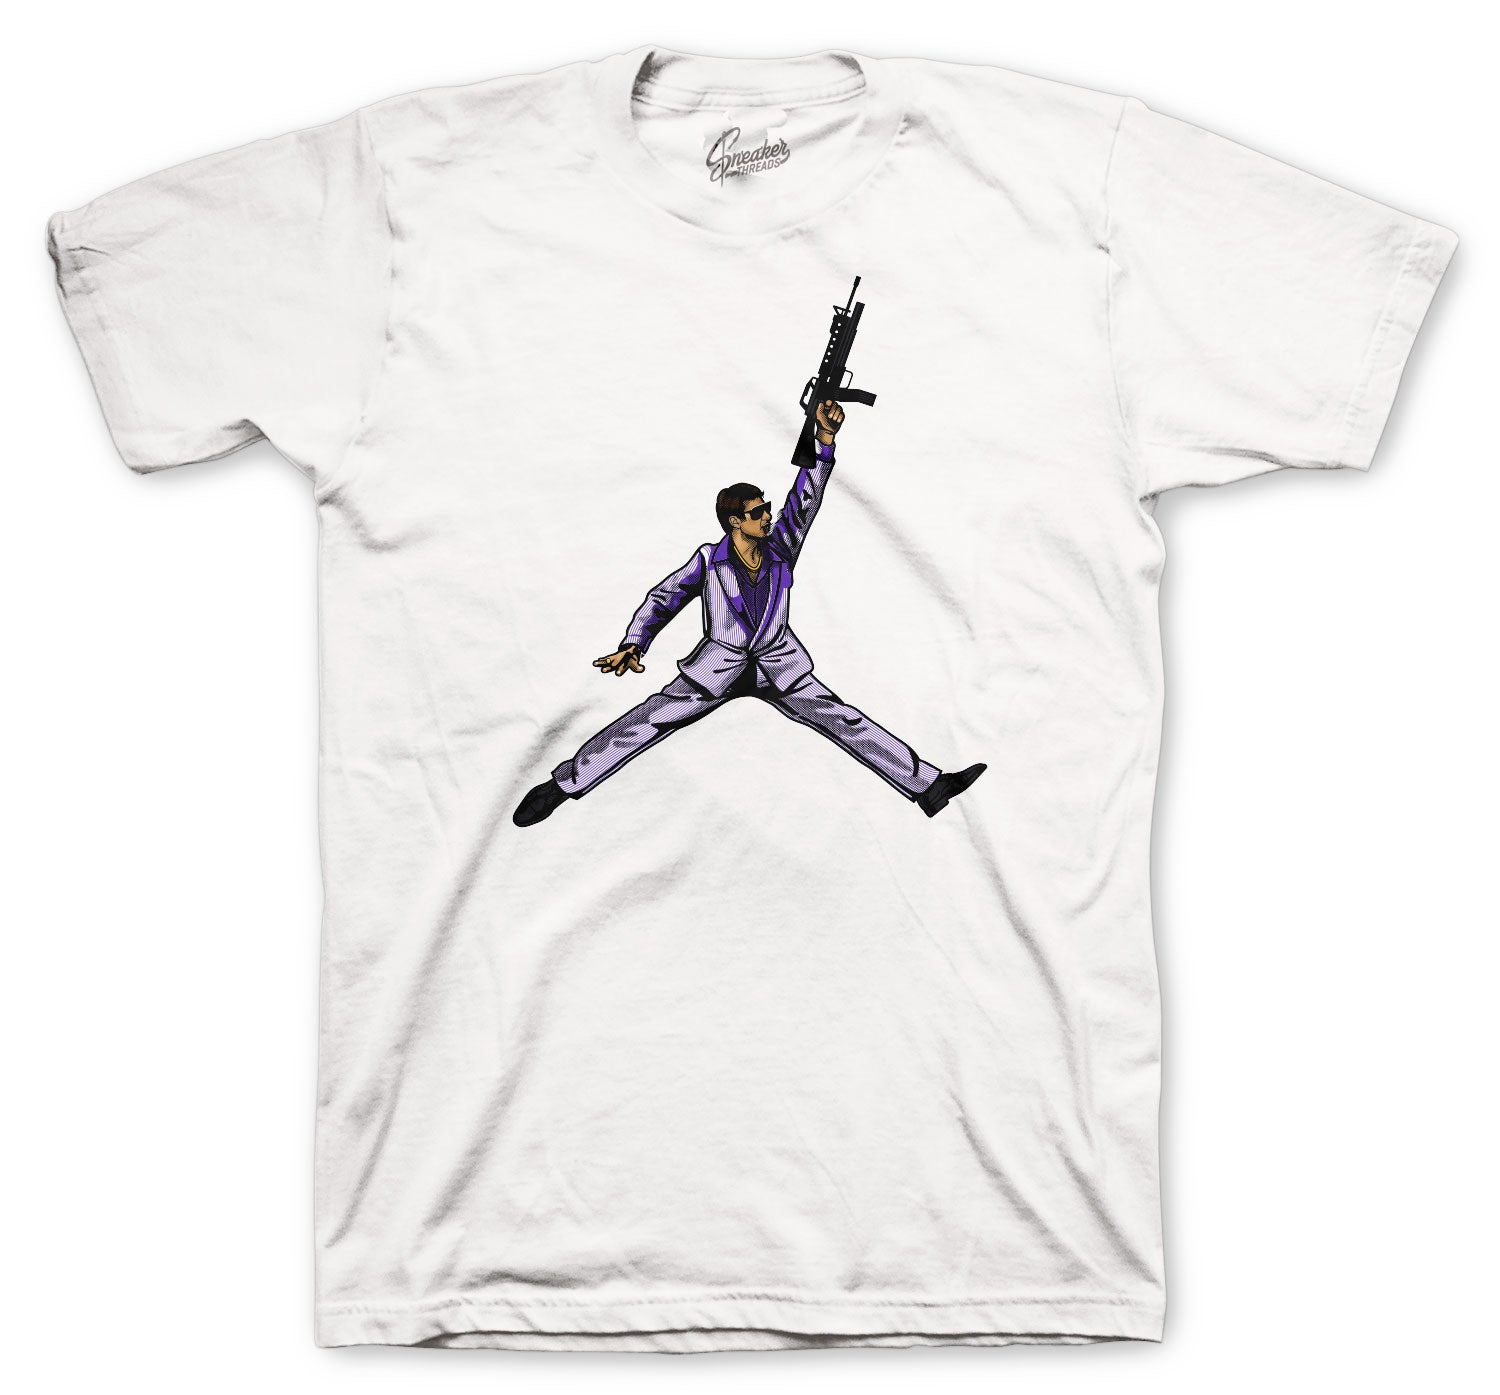 Jordan 12 Dark Concord Air Tony Shirt